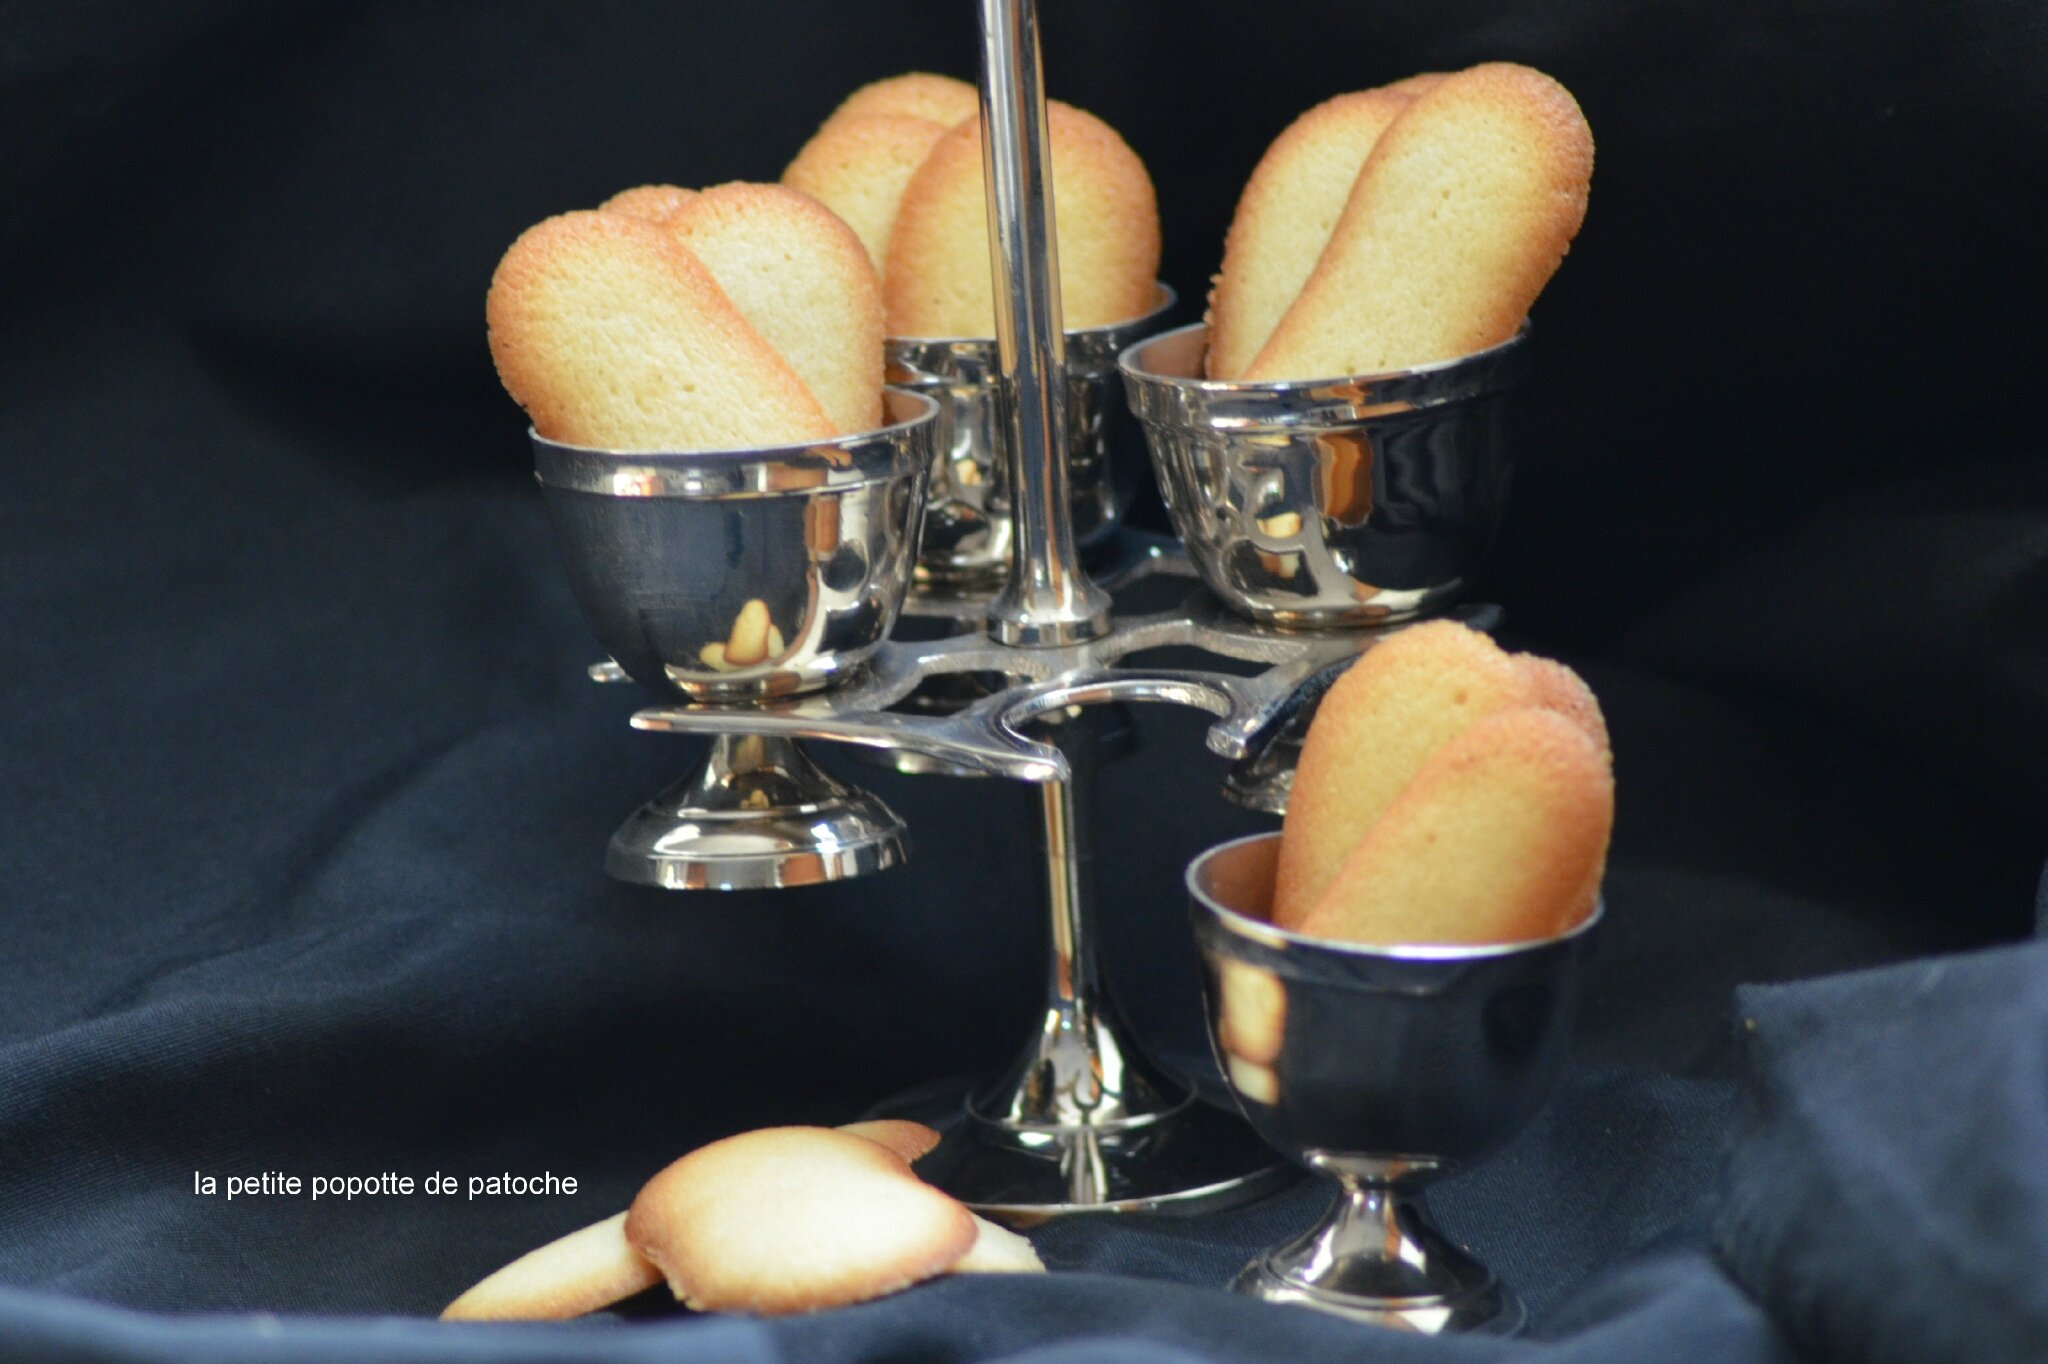 LANGUES de CHAT au THERMOMIX ou SANS